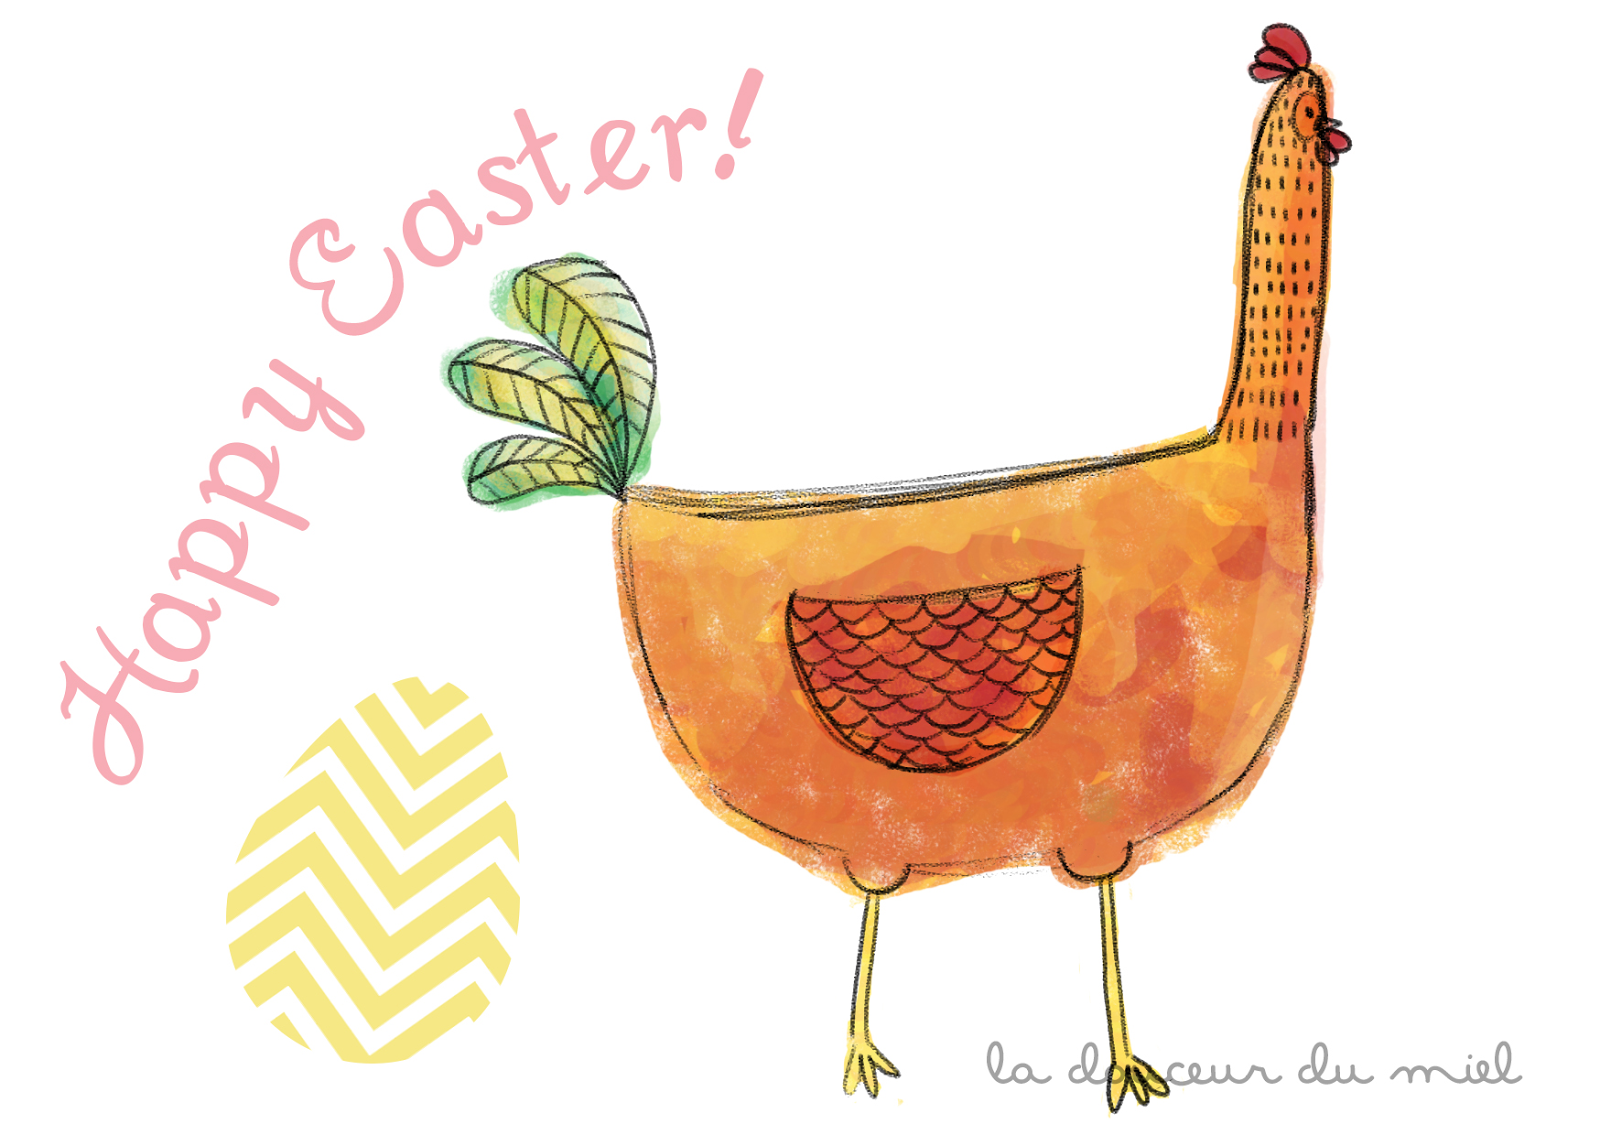 happy easter chicken digital illustration with egg